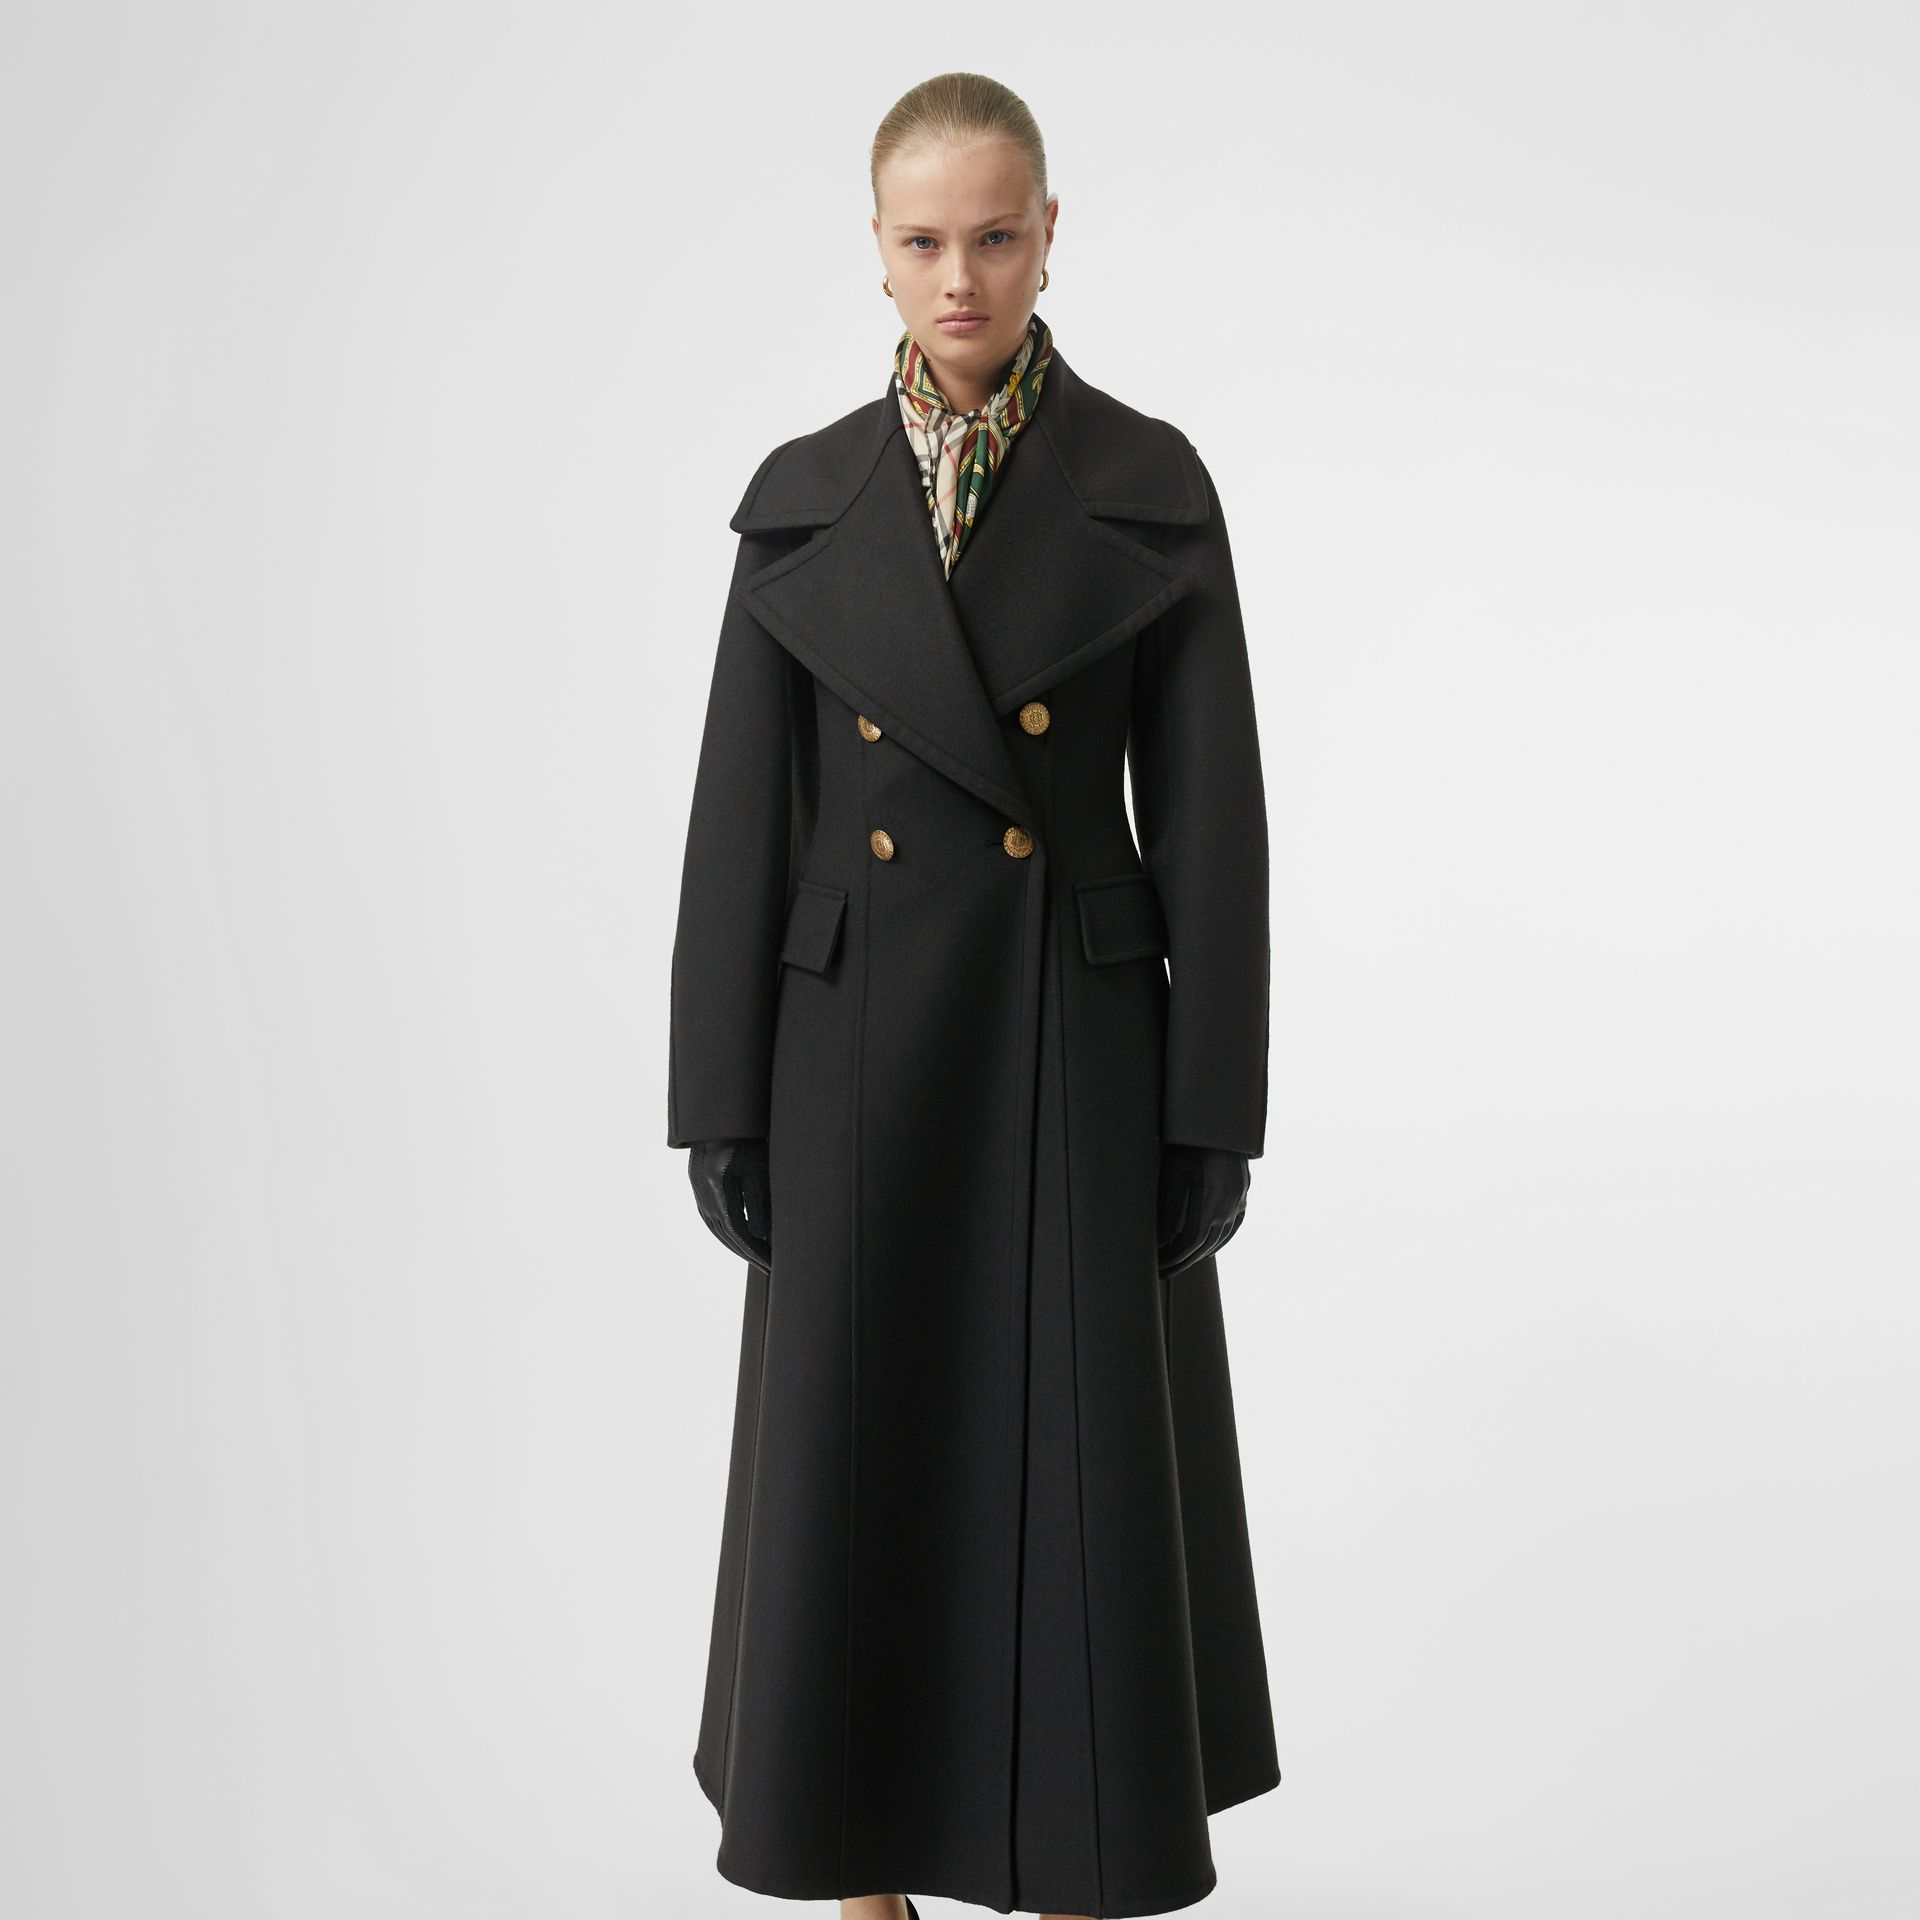 Doeskin Wool Tailored Coat in Dark Forest Green - Women | Burberry United Kingdom - gallery image 5